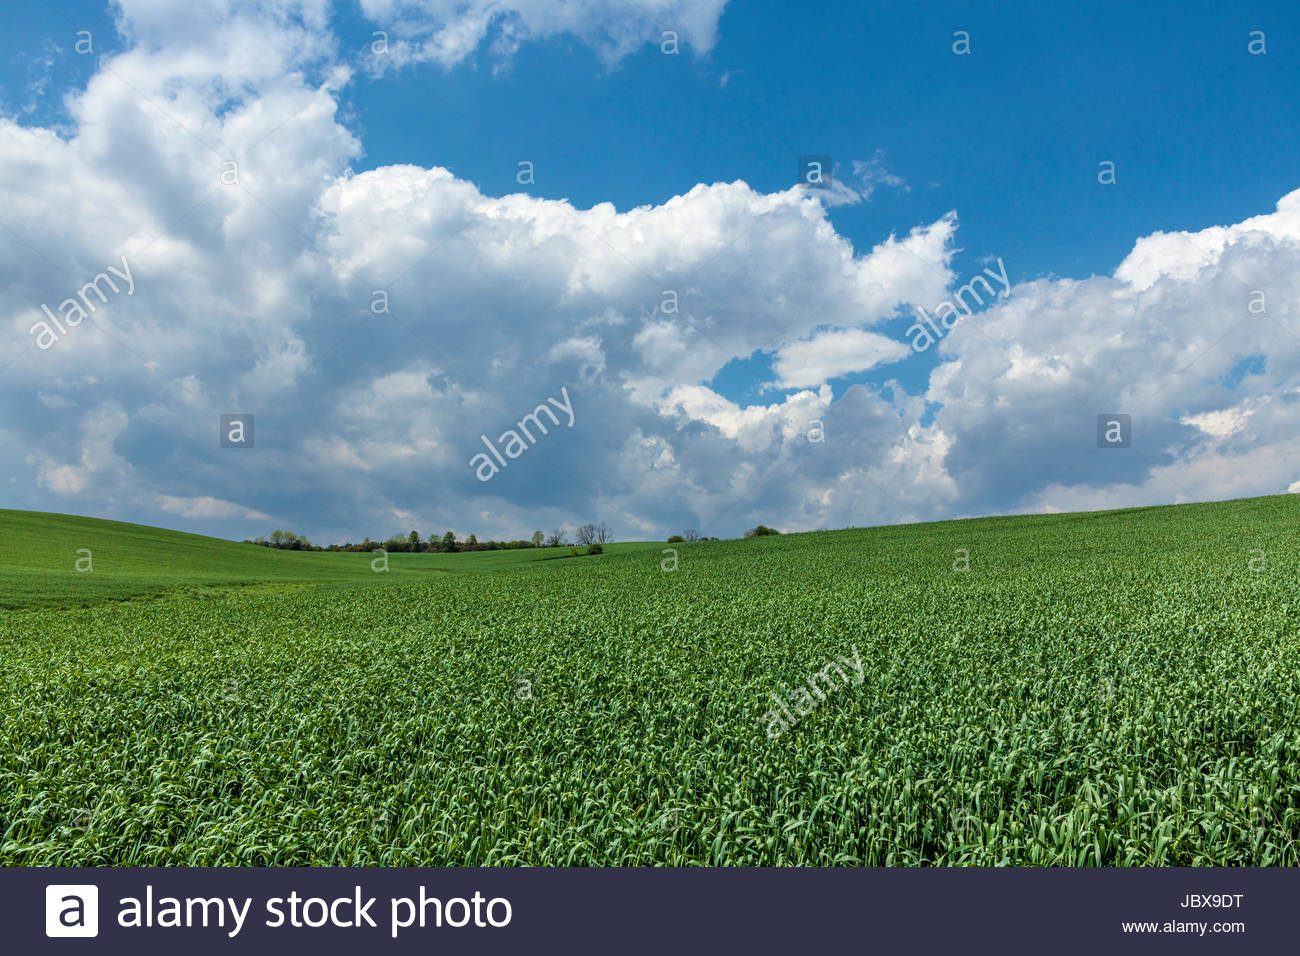 Afternoon cumulus congestus clouds forming from conditions of high humidity and rising hotter air over farm fields - Stock Image